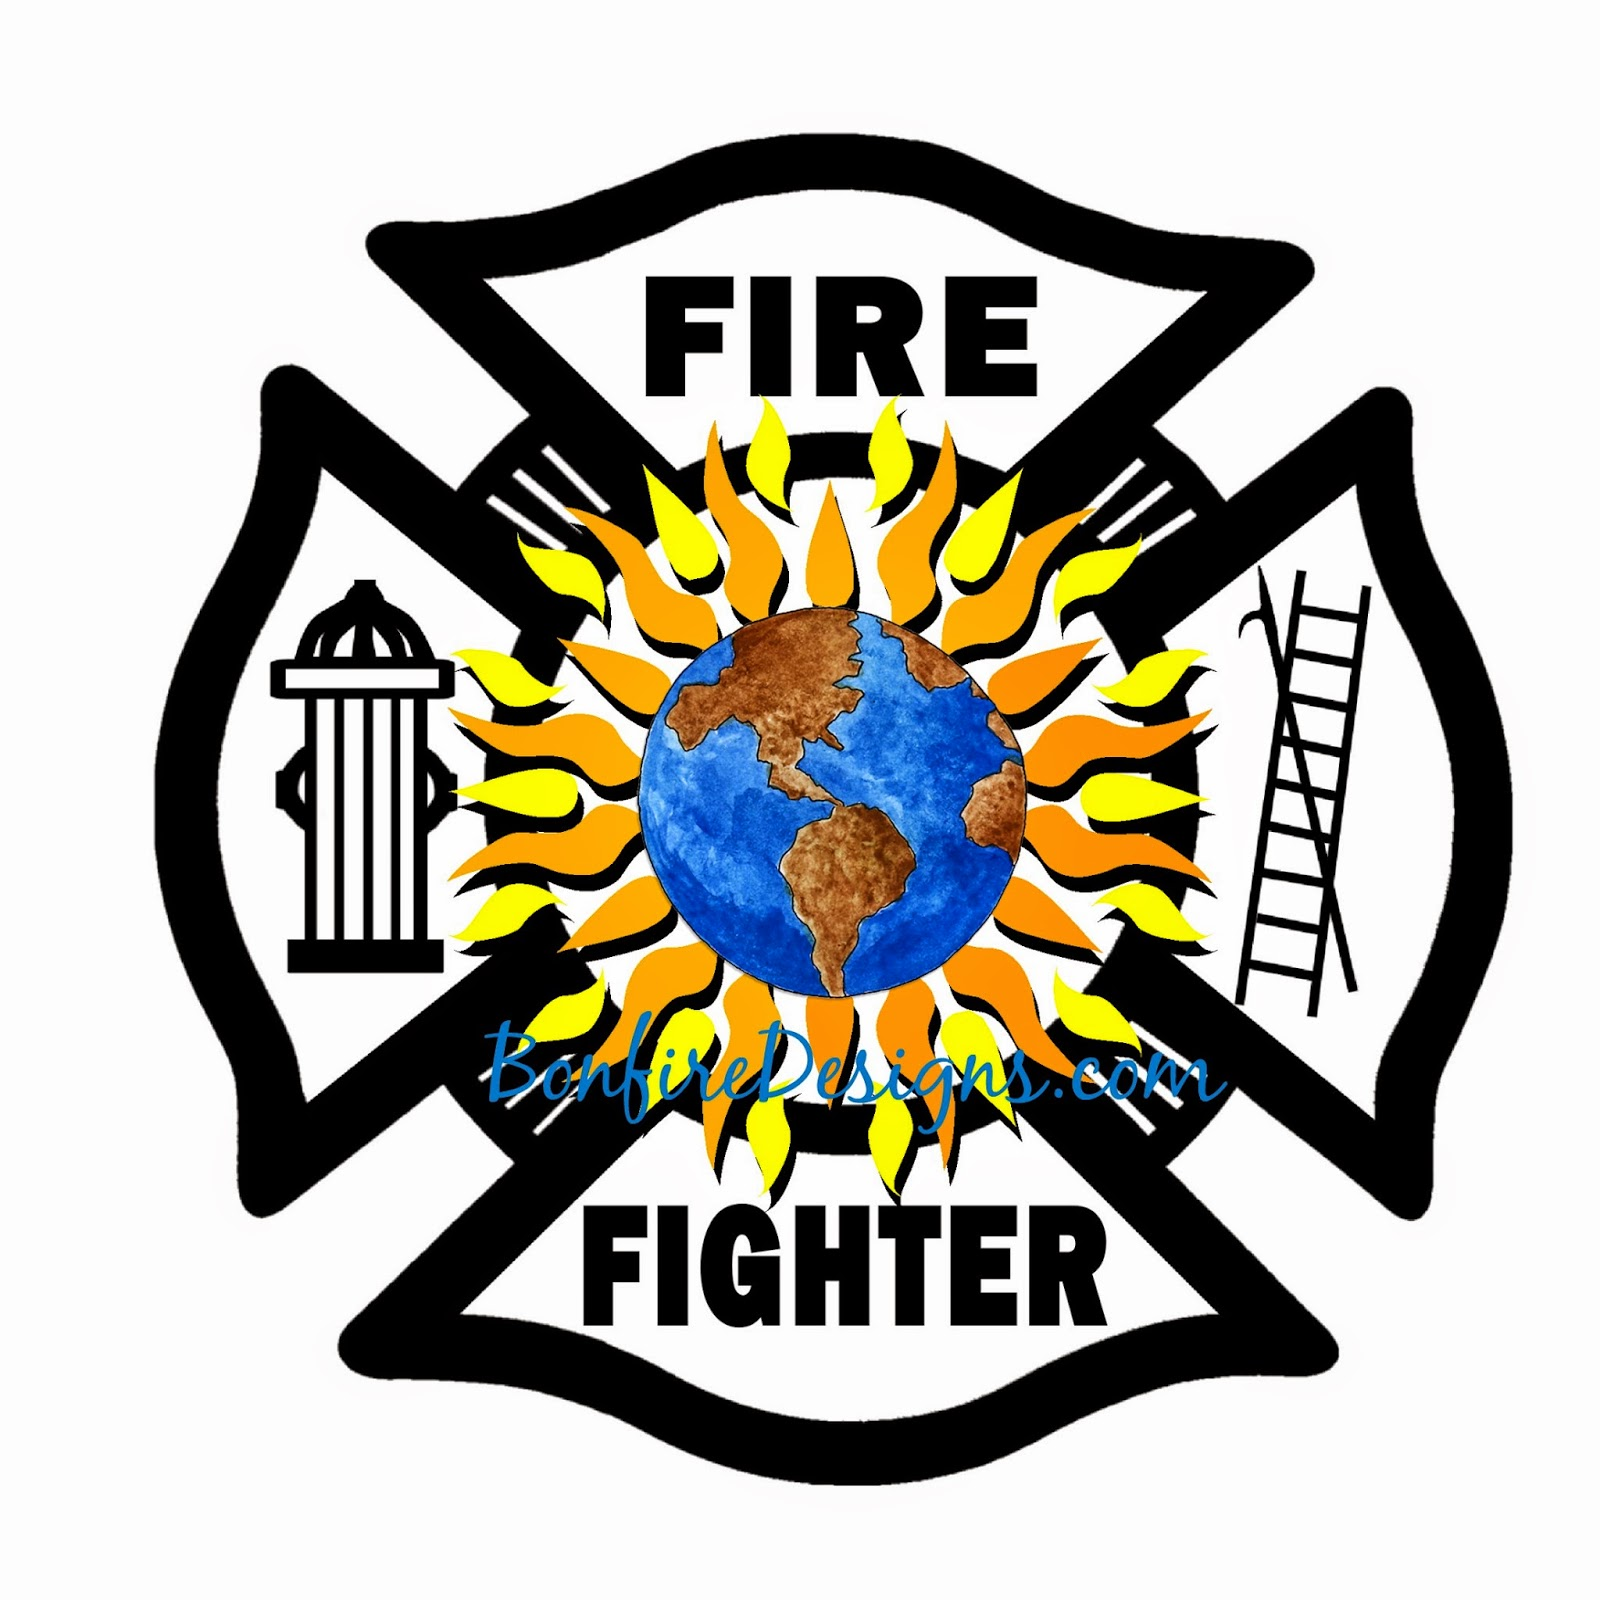 Firefighter Energy Logo